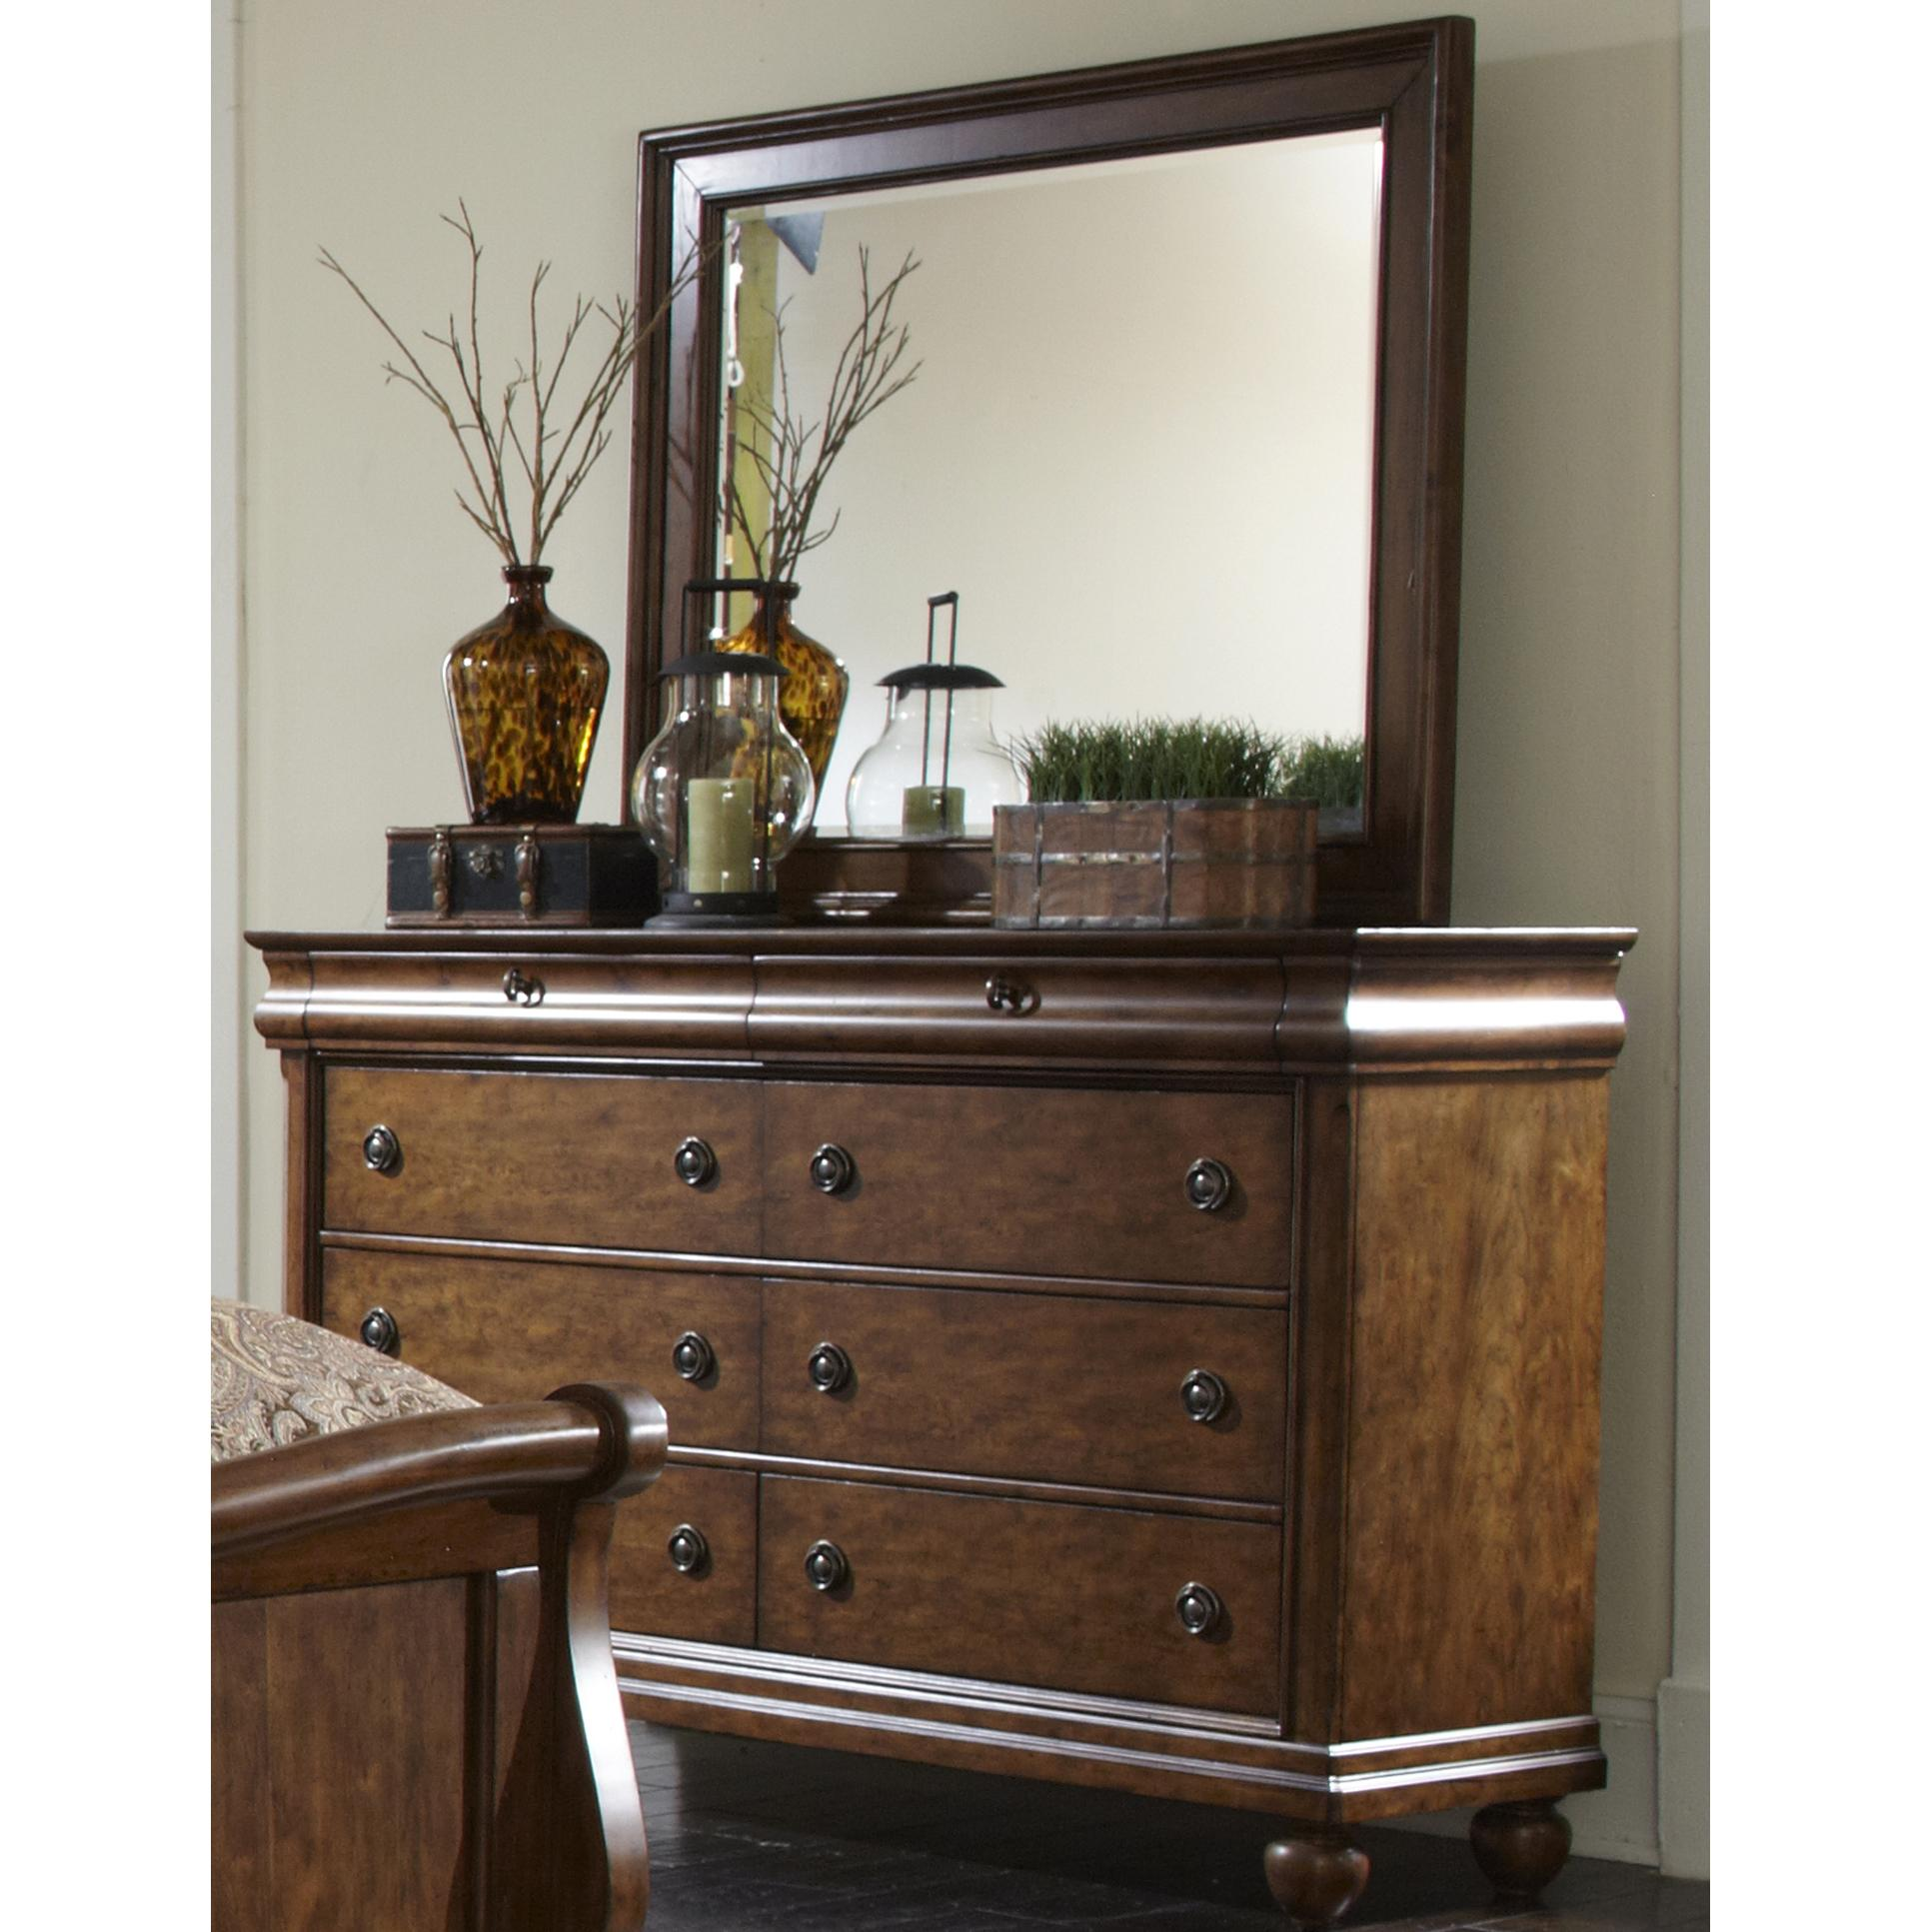 Rustic Traditions Dresser and Mirror by Liberty Furniture at Northeast Factory Direct